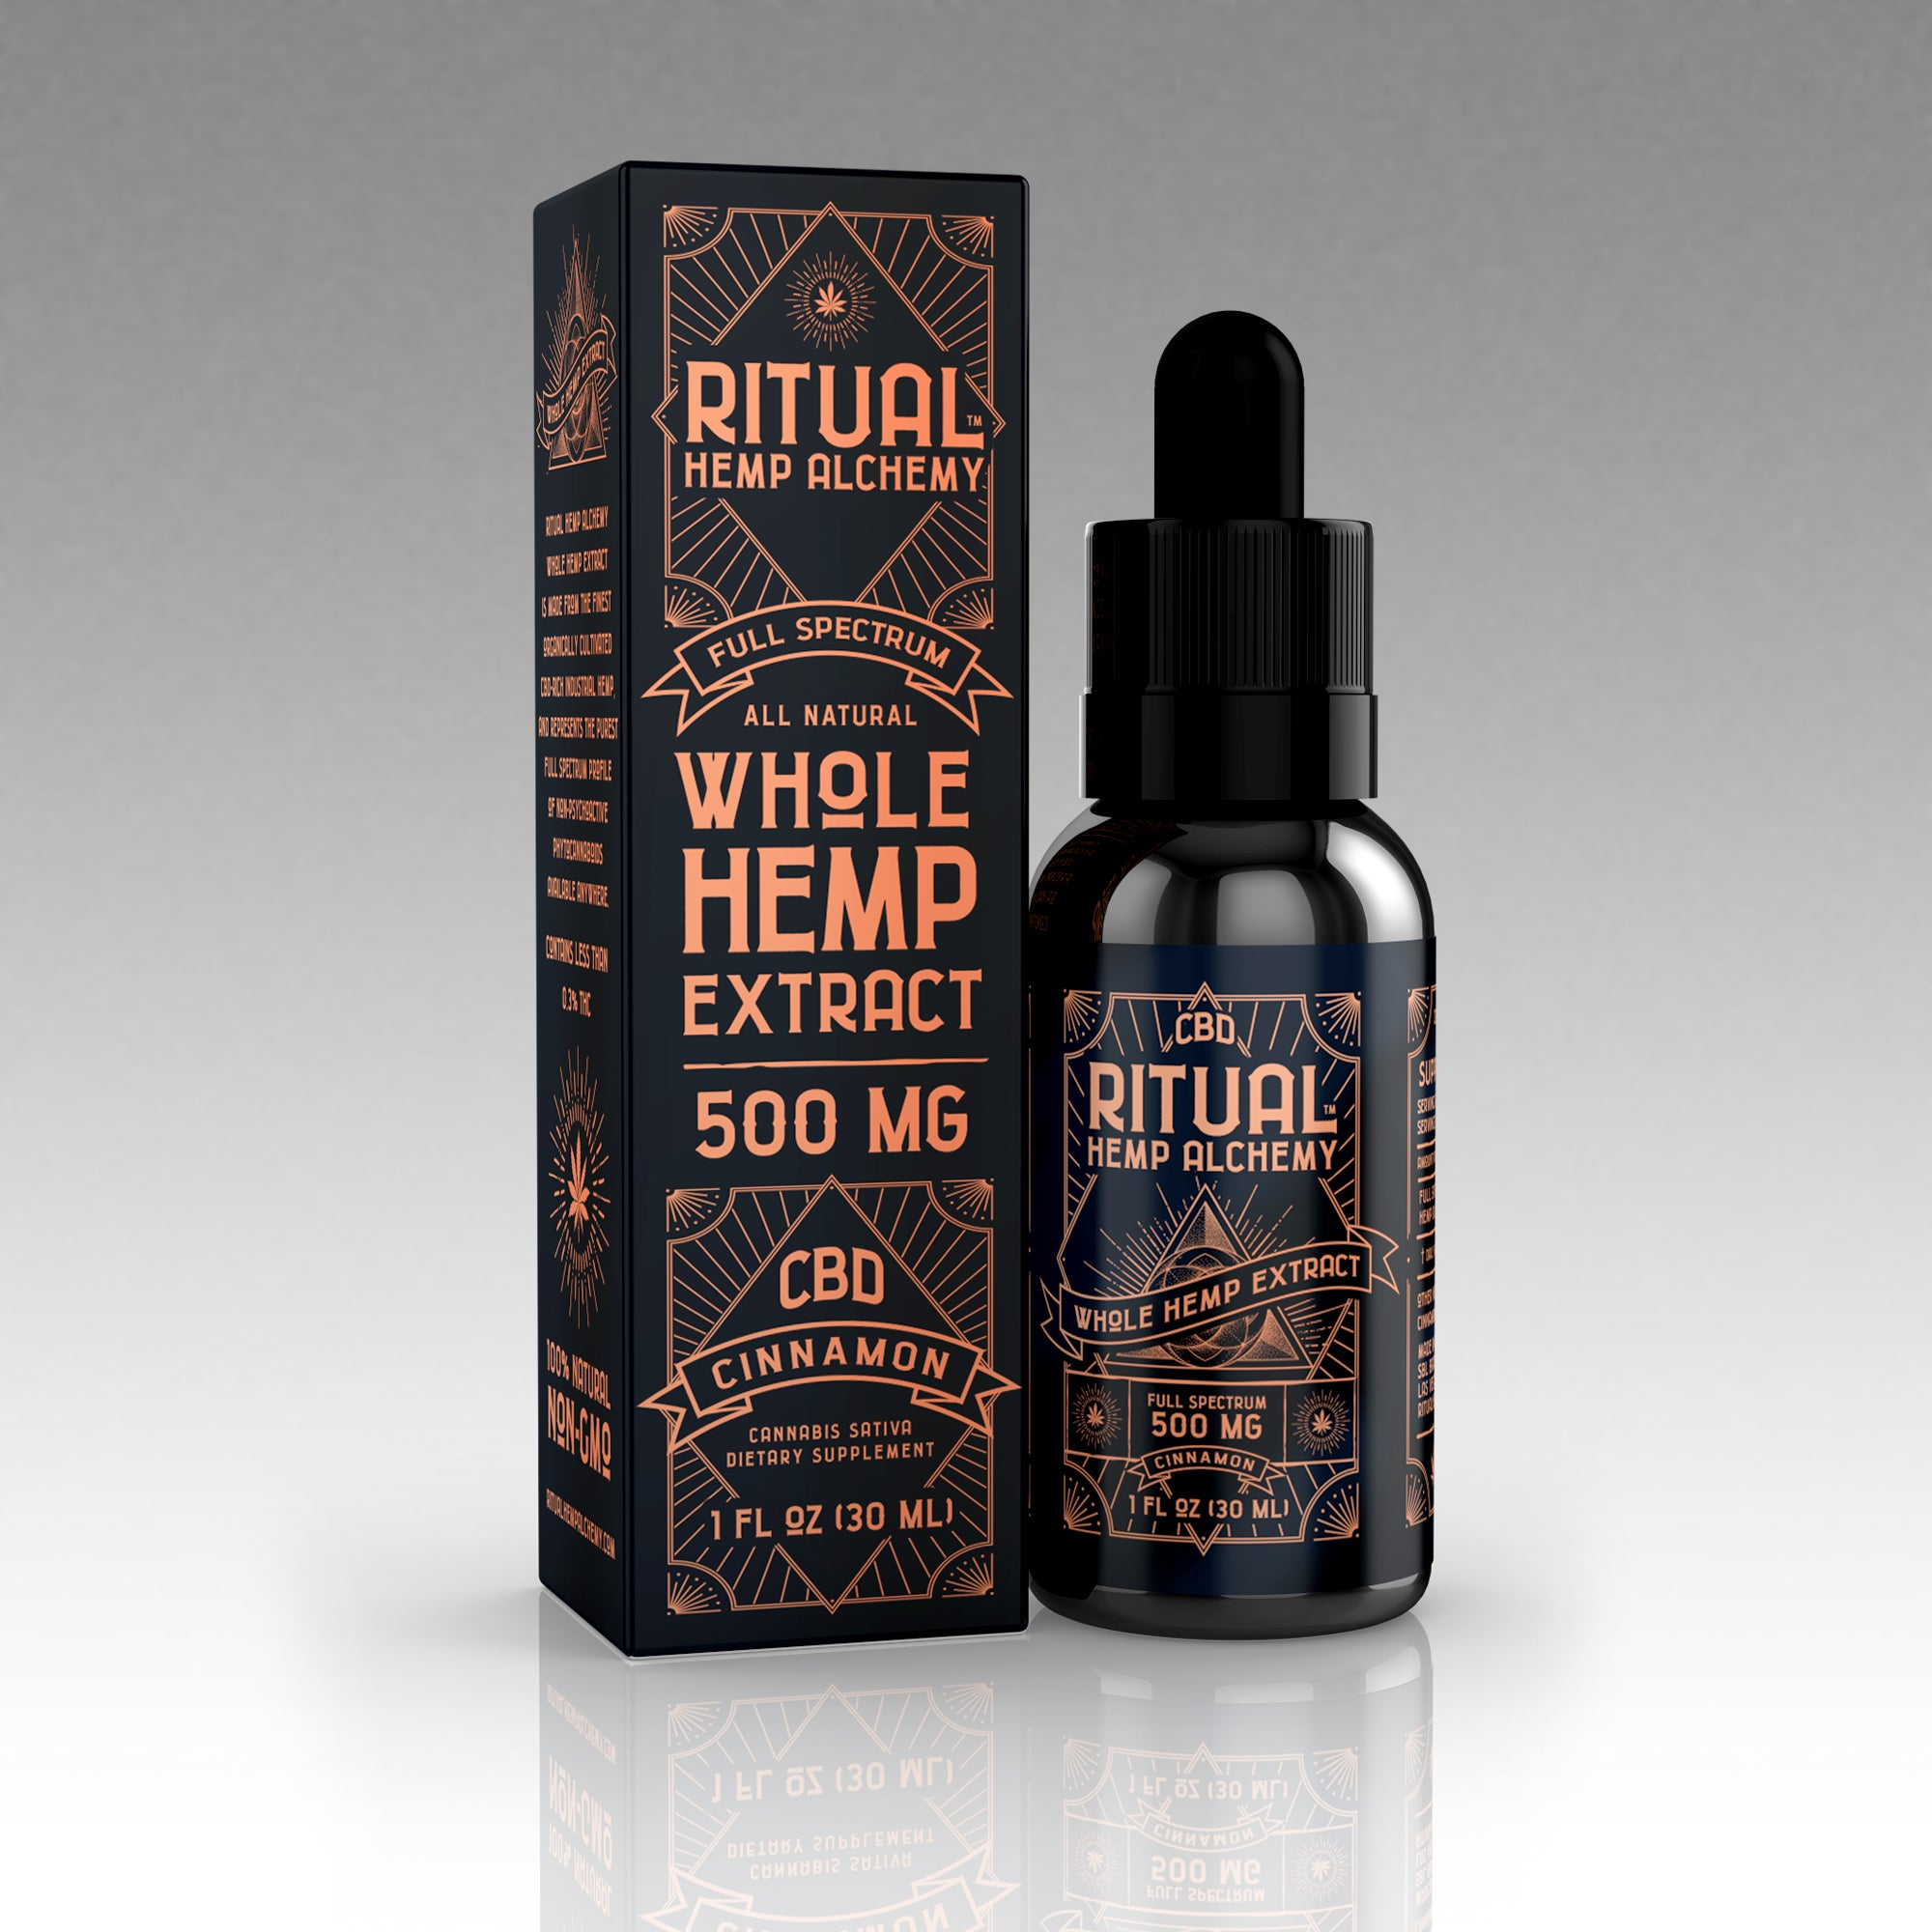 Ritual Hemp Alchemy 500 mg Whole Hemp Extract Tincture, Cinnamon (24 Units)